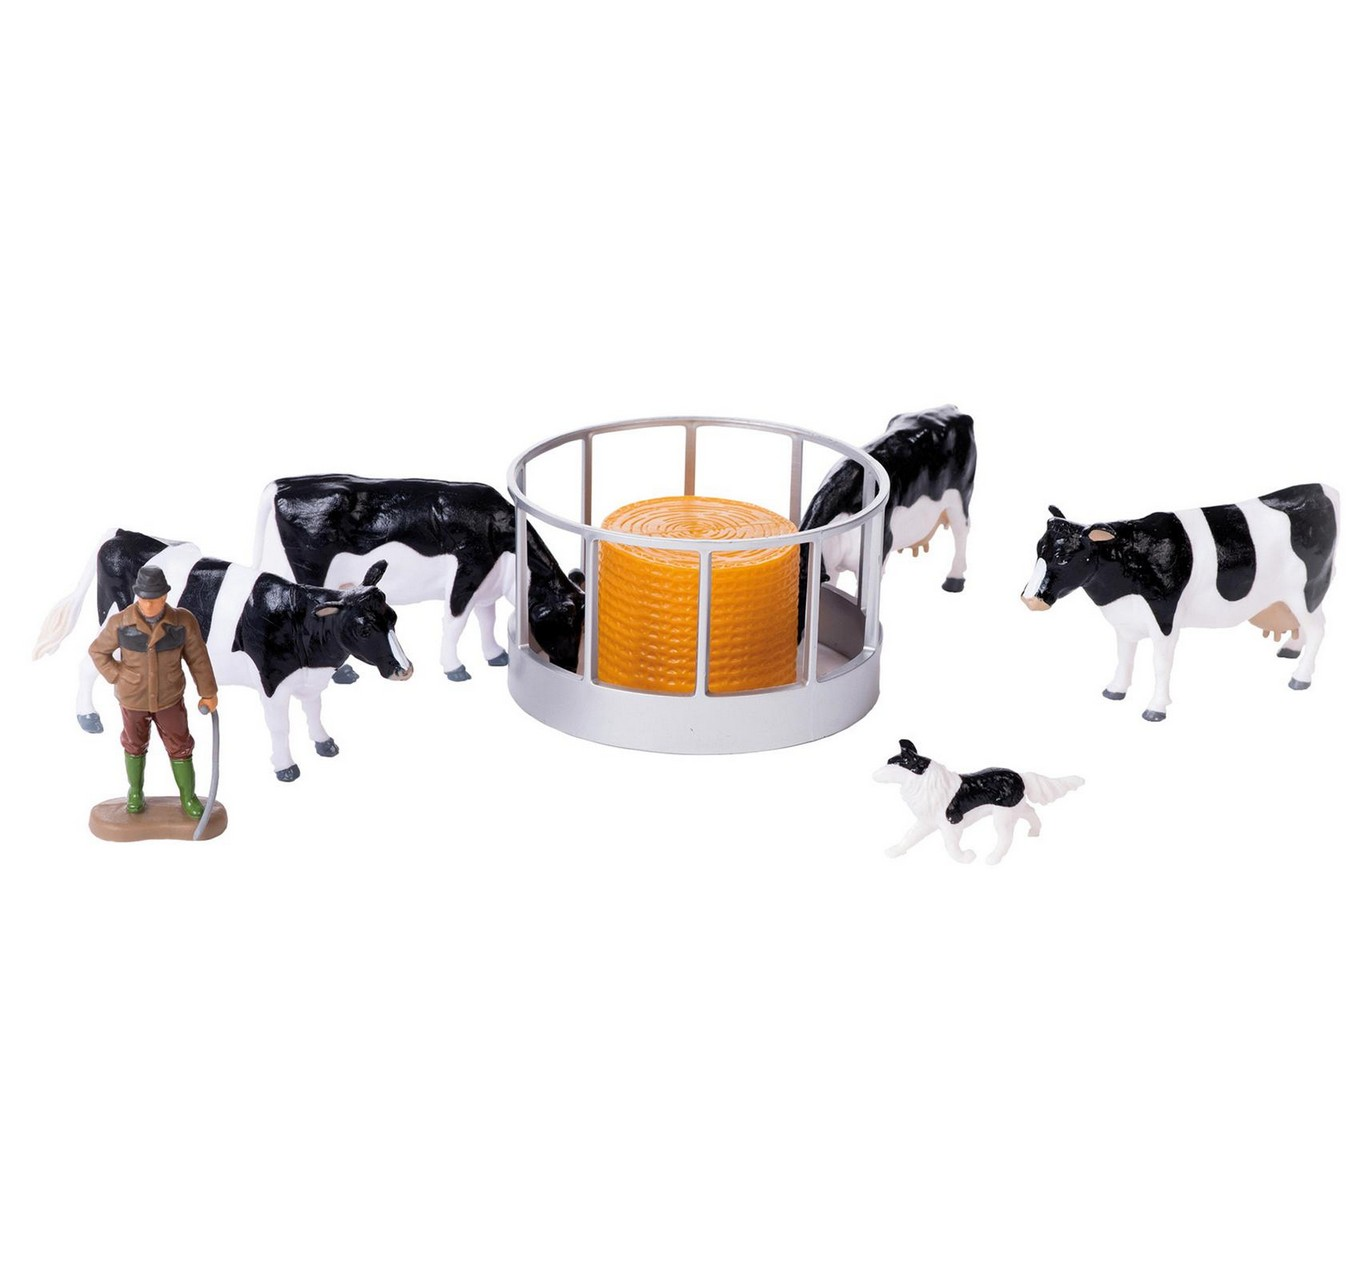 Cattle Feeder Set